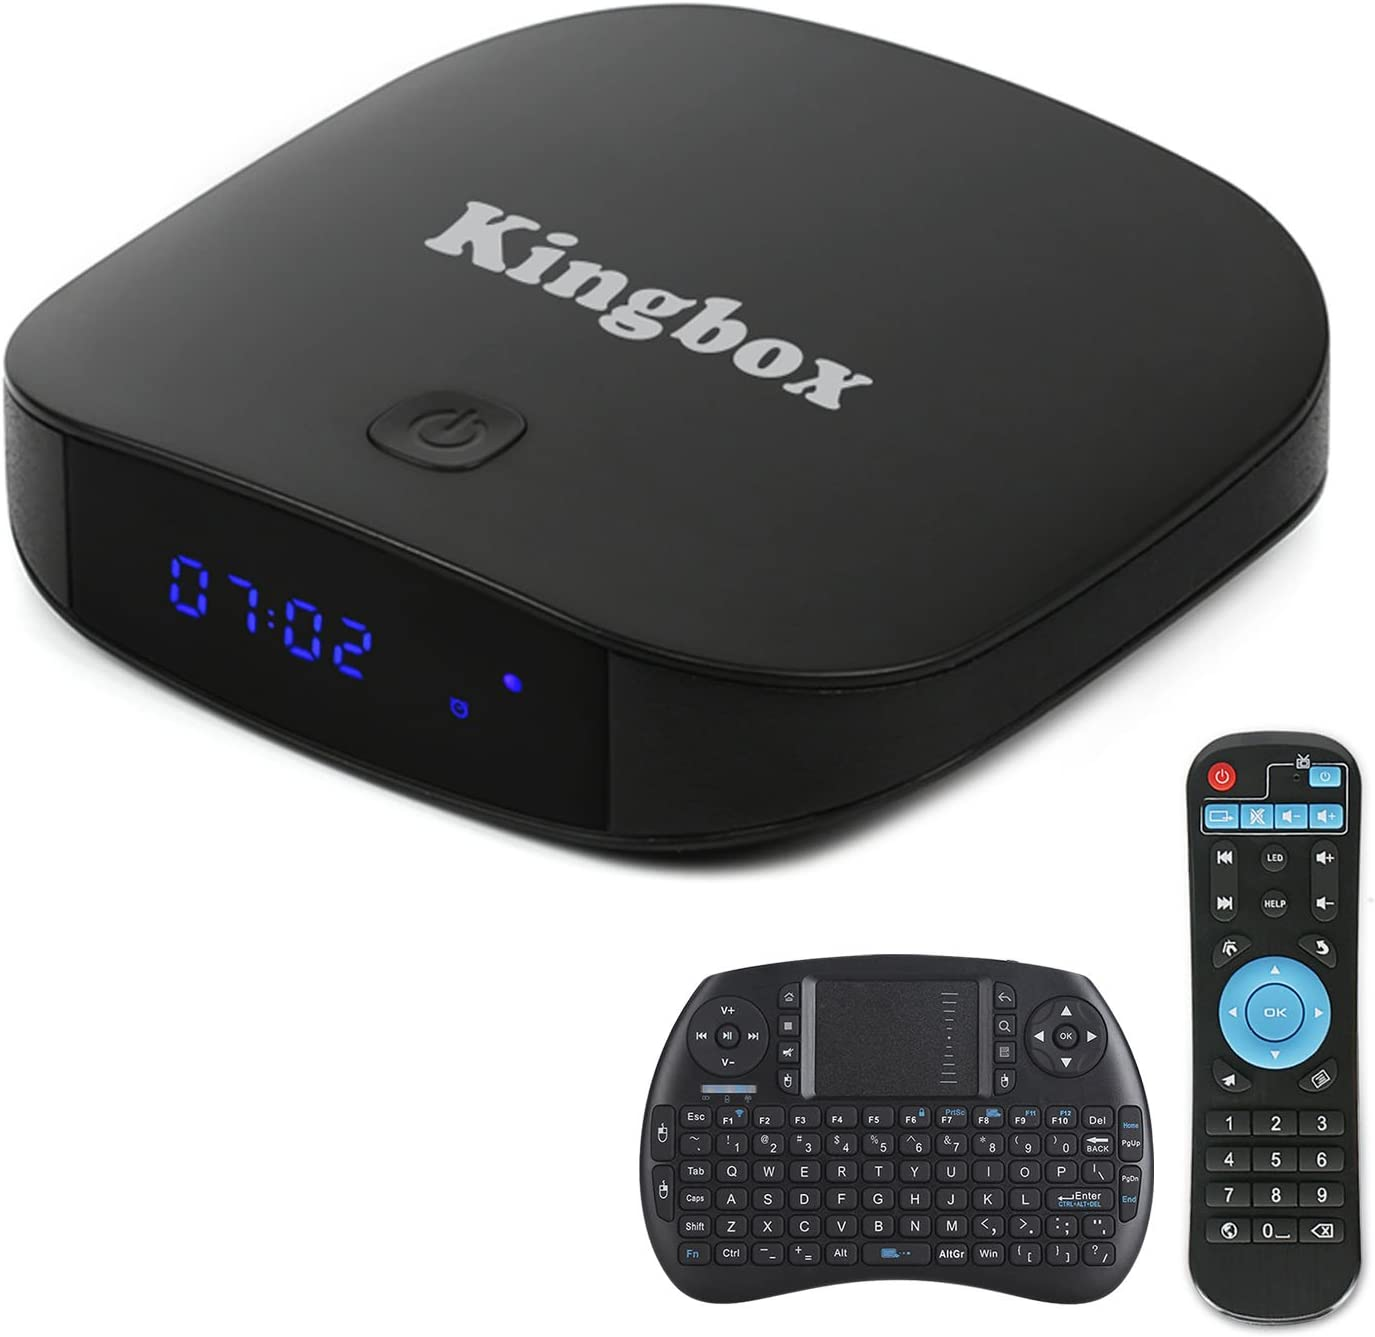 Kingbox K1 PLUS Android 6.0 TV 2GB RAM + 8GB ROM / 4K / 4 Core / H.265 / BT 4.0 Smart TV Box con Mini Tastiera Senza Fili [2017 Ultima Generazione]